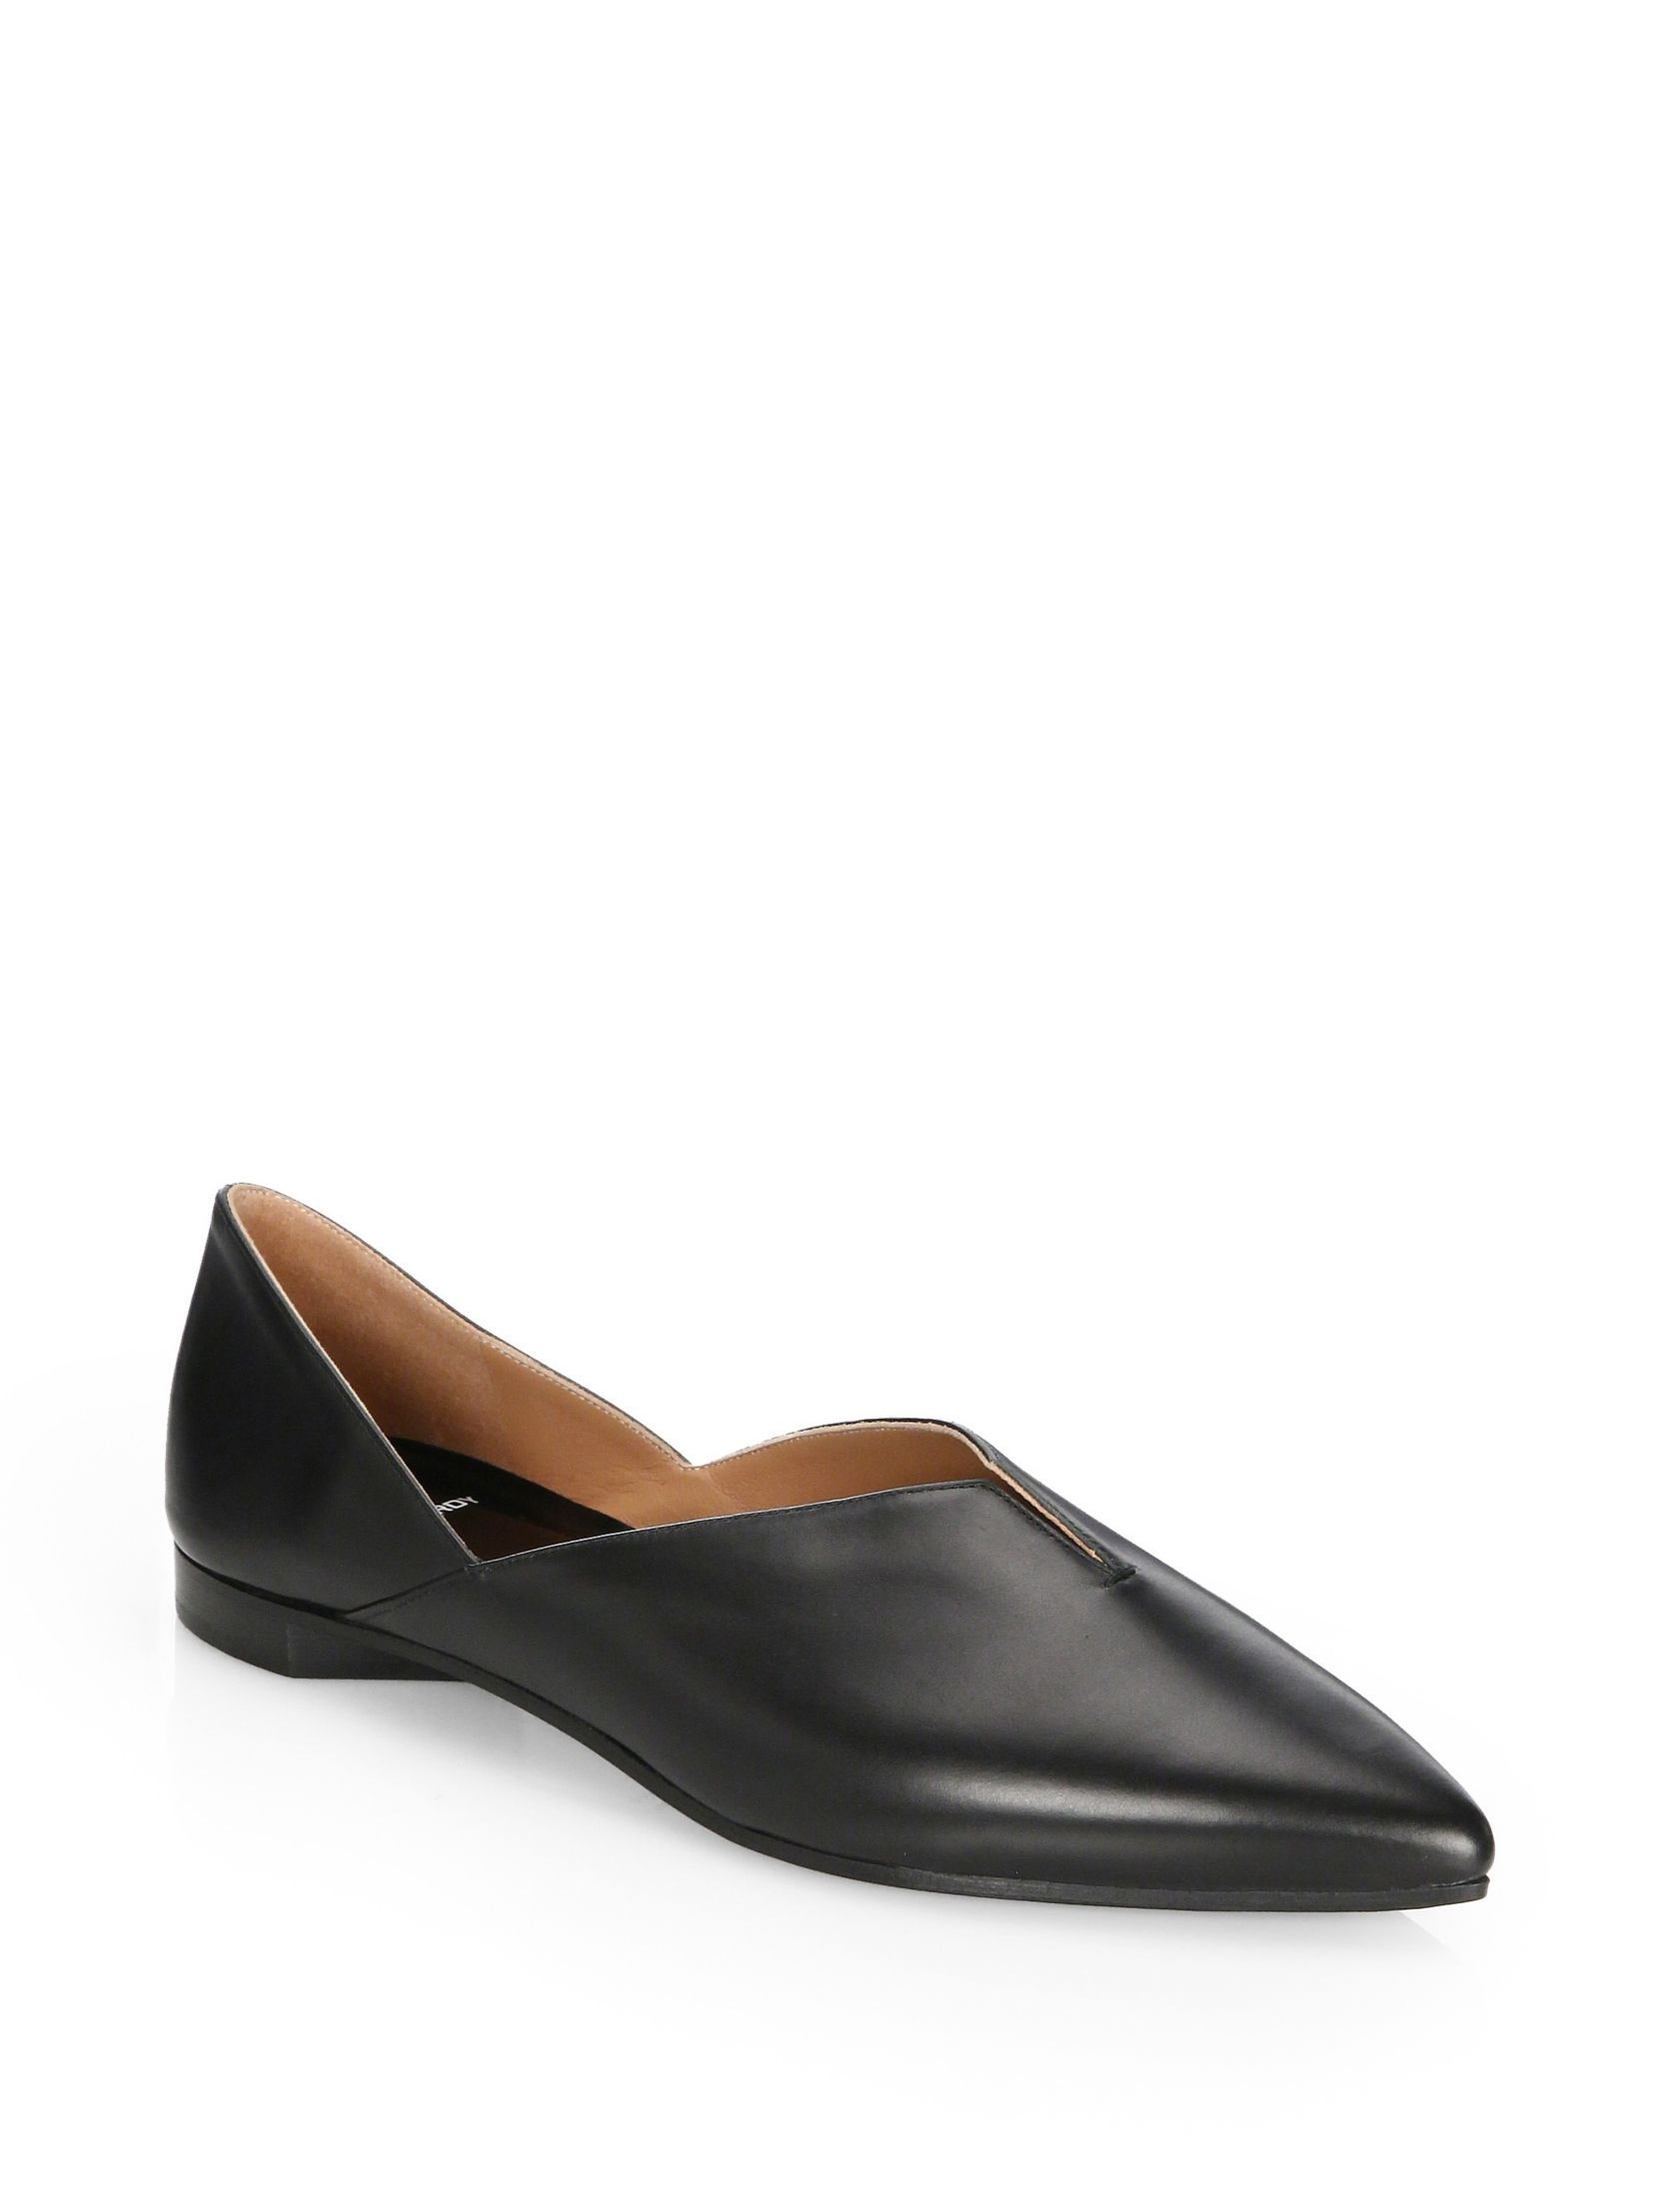 Pierre Hardy Point Toe Leather Loafers 5DIqMzcBX